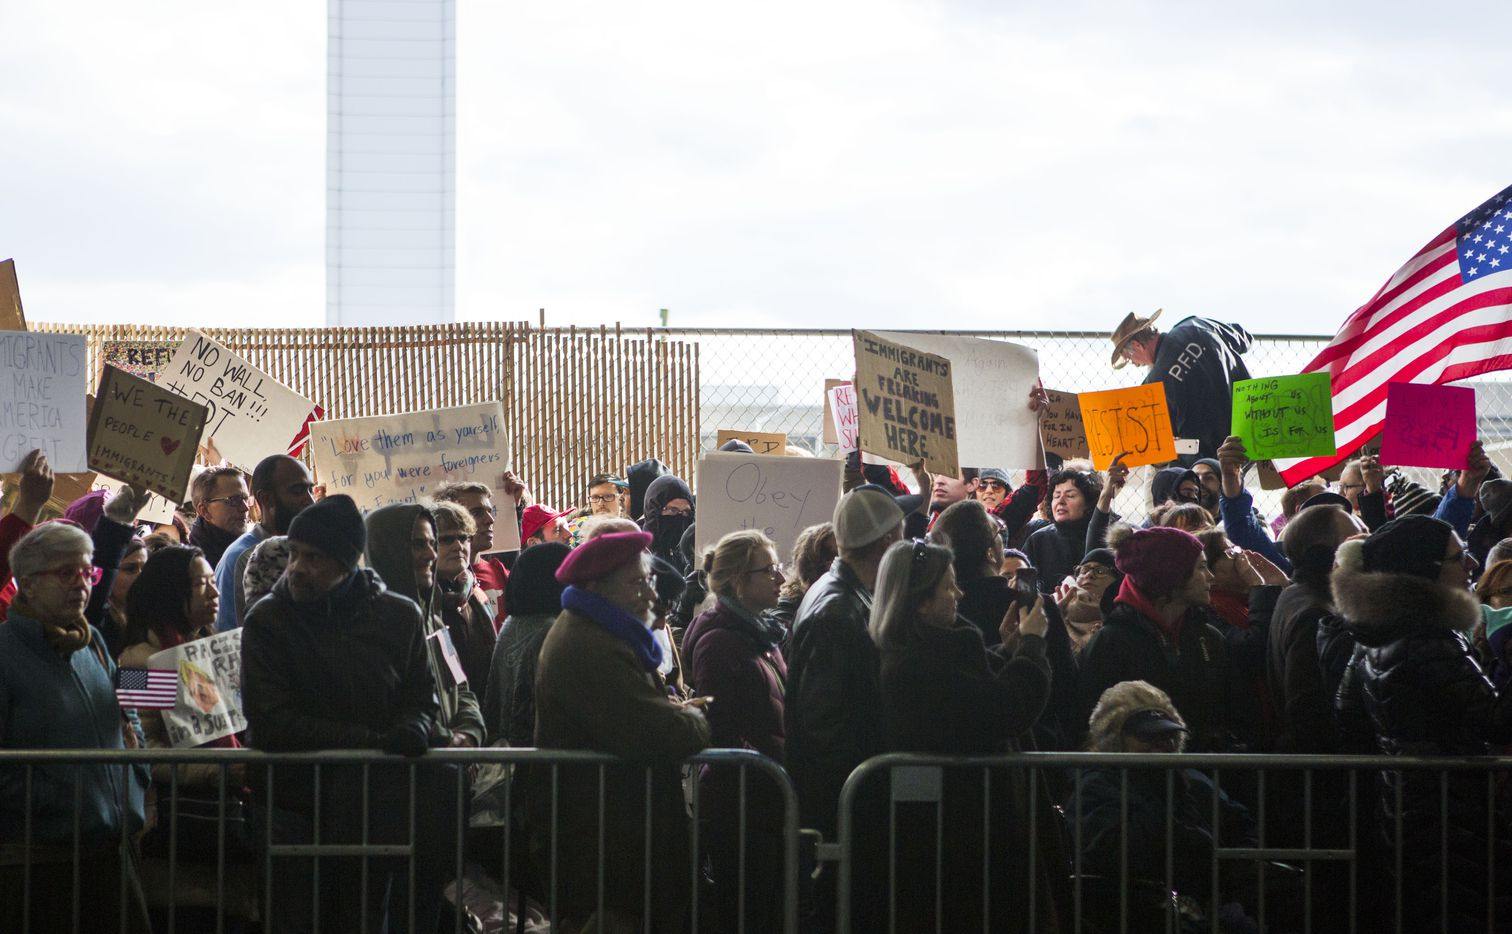 PHILADELPHIA, PA - JANUARY 29: Demonstrators at Philadelphia International Airport protest against the executive order that President Donald Trump signed  clamping down on refugee admissions and temporarily restricting travelers from seven predominantly Muslim countries on January 29, 2017 in Philadelphia, Pennsylvania. Demonstrators gathered at airports across the country in protest of the order. (Photo by Jessica Kourkounis/Getty Images)